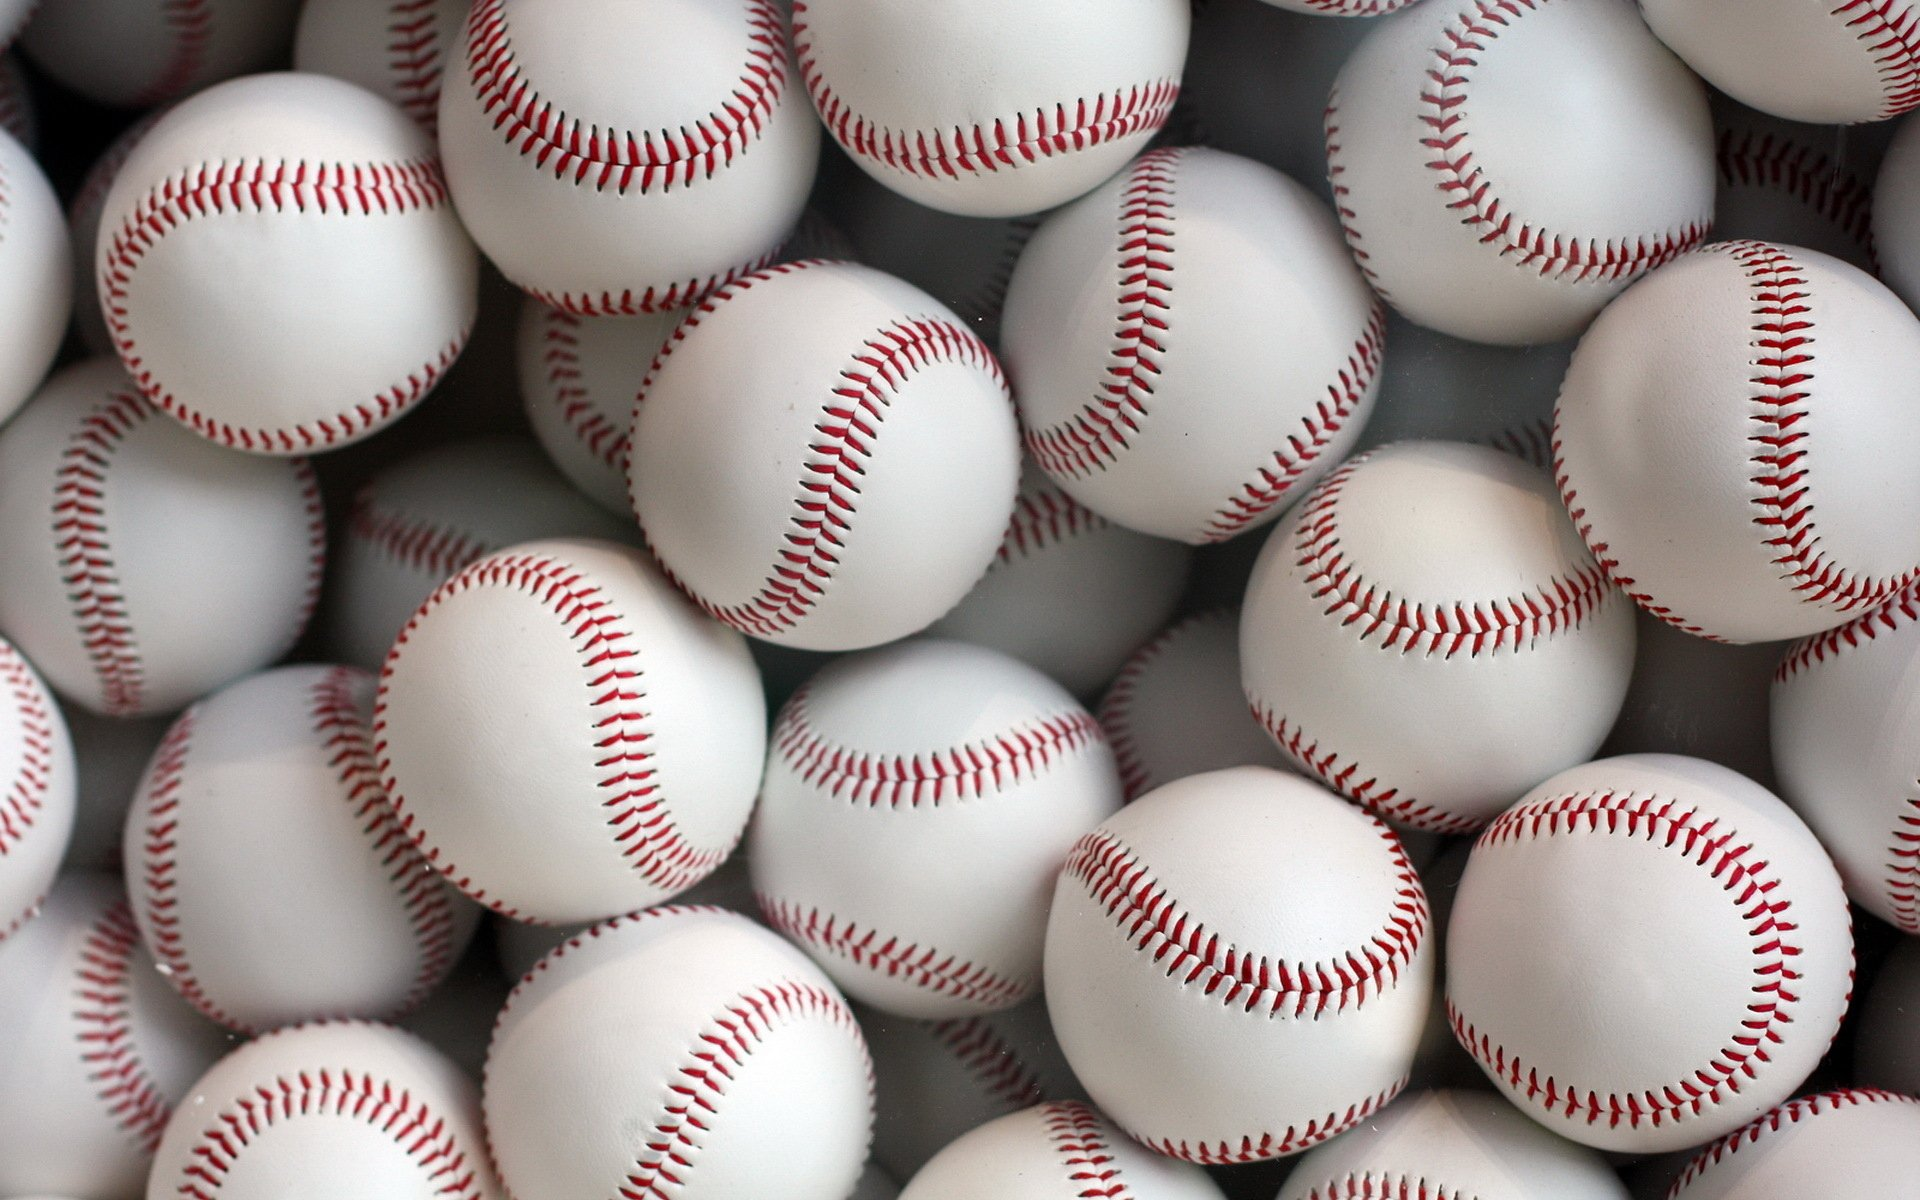 43 Baseball HD Wallpapers